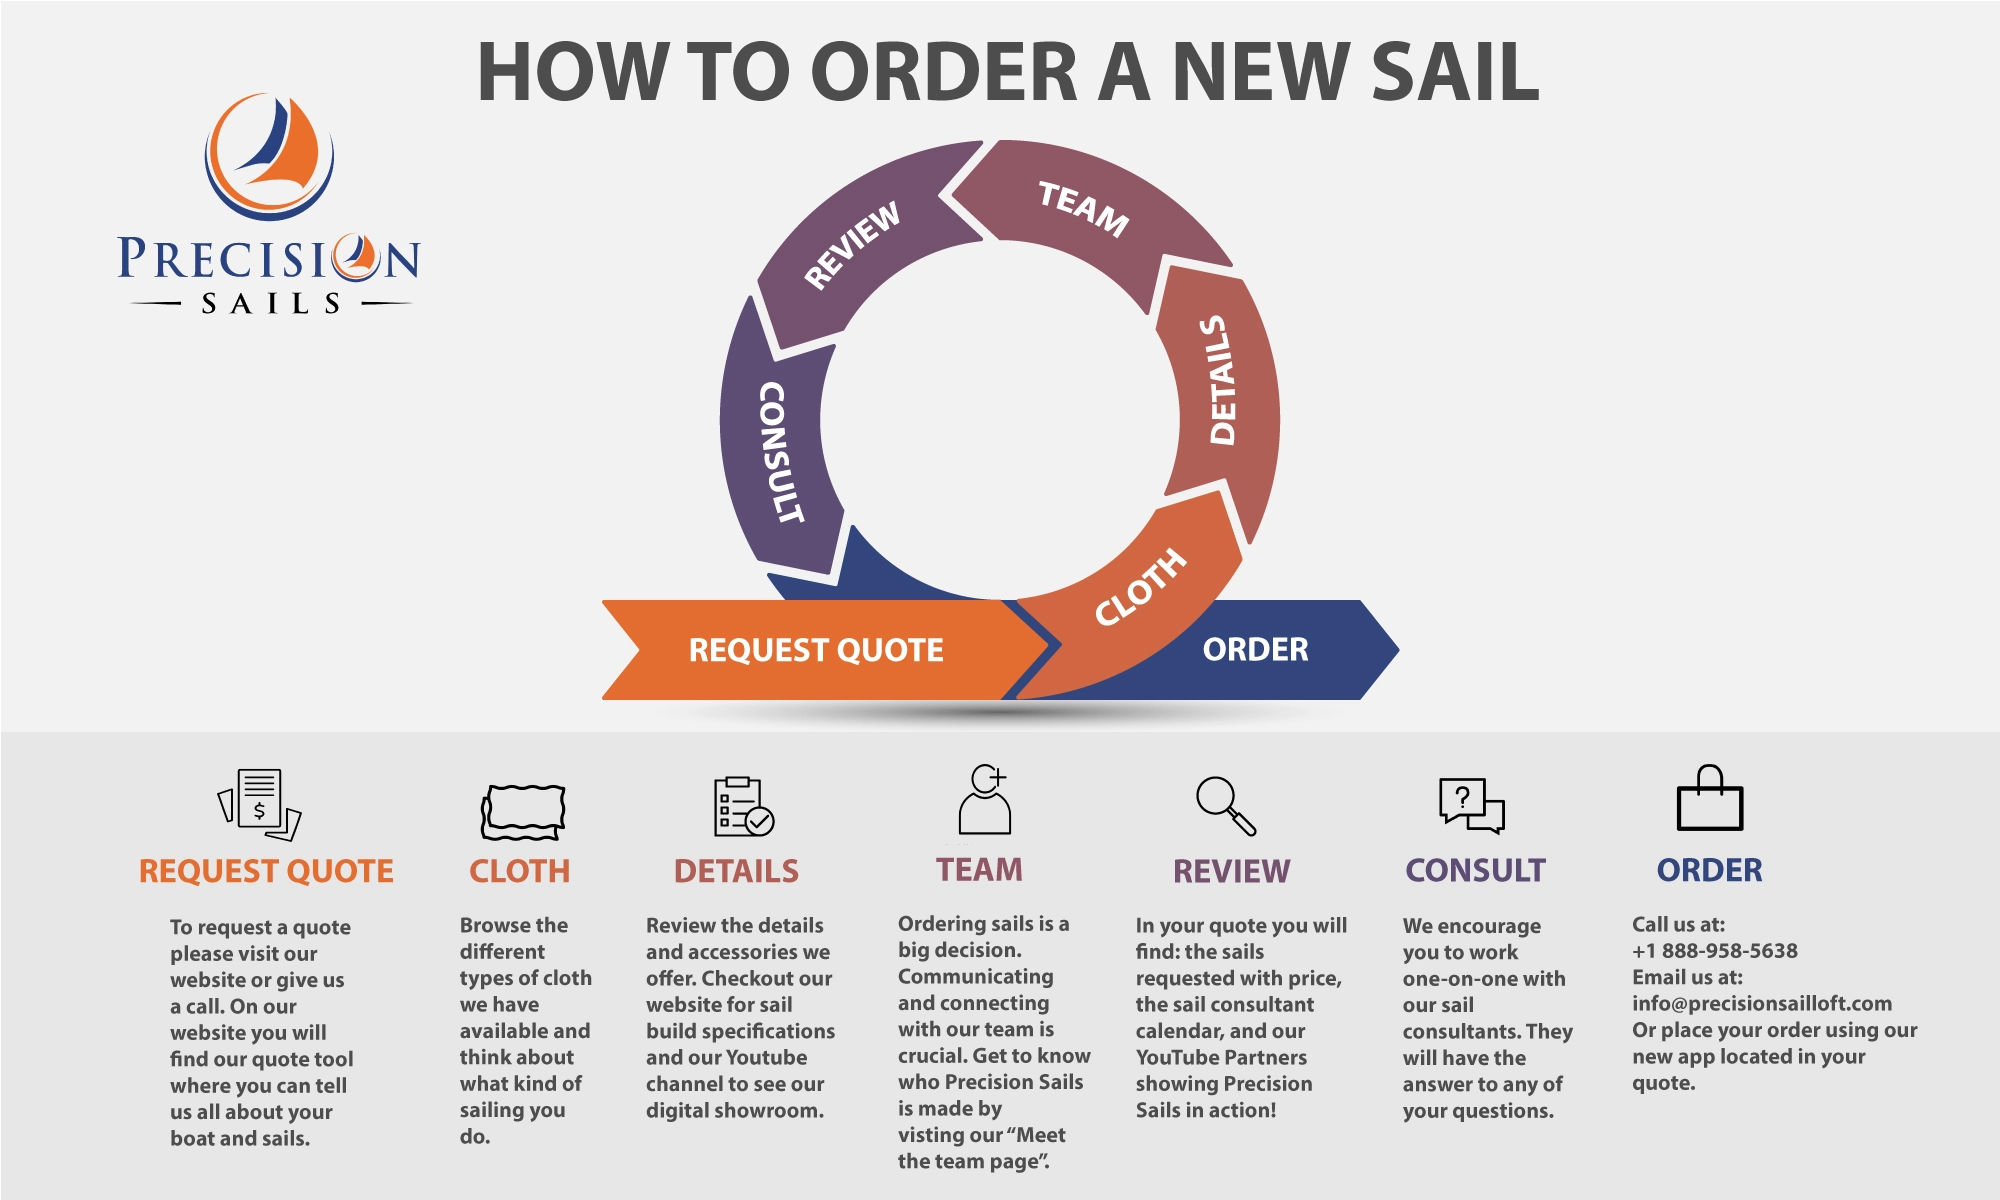 How to Order a New Sail